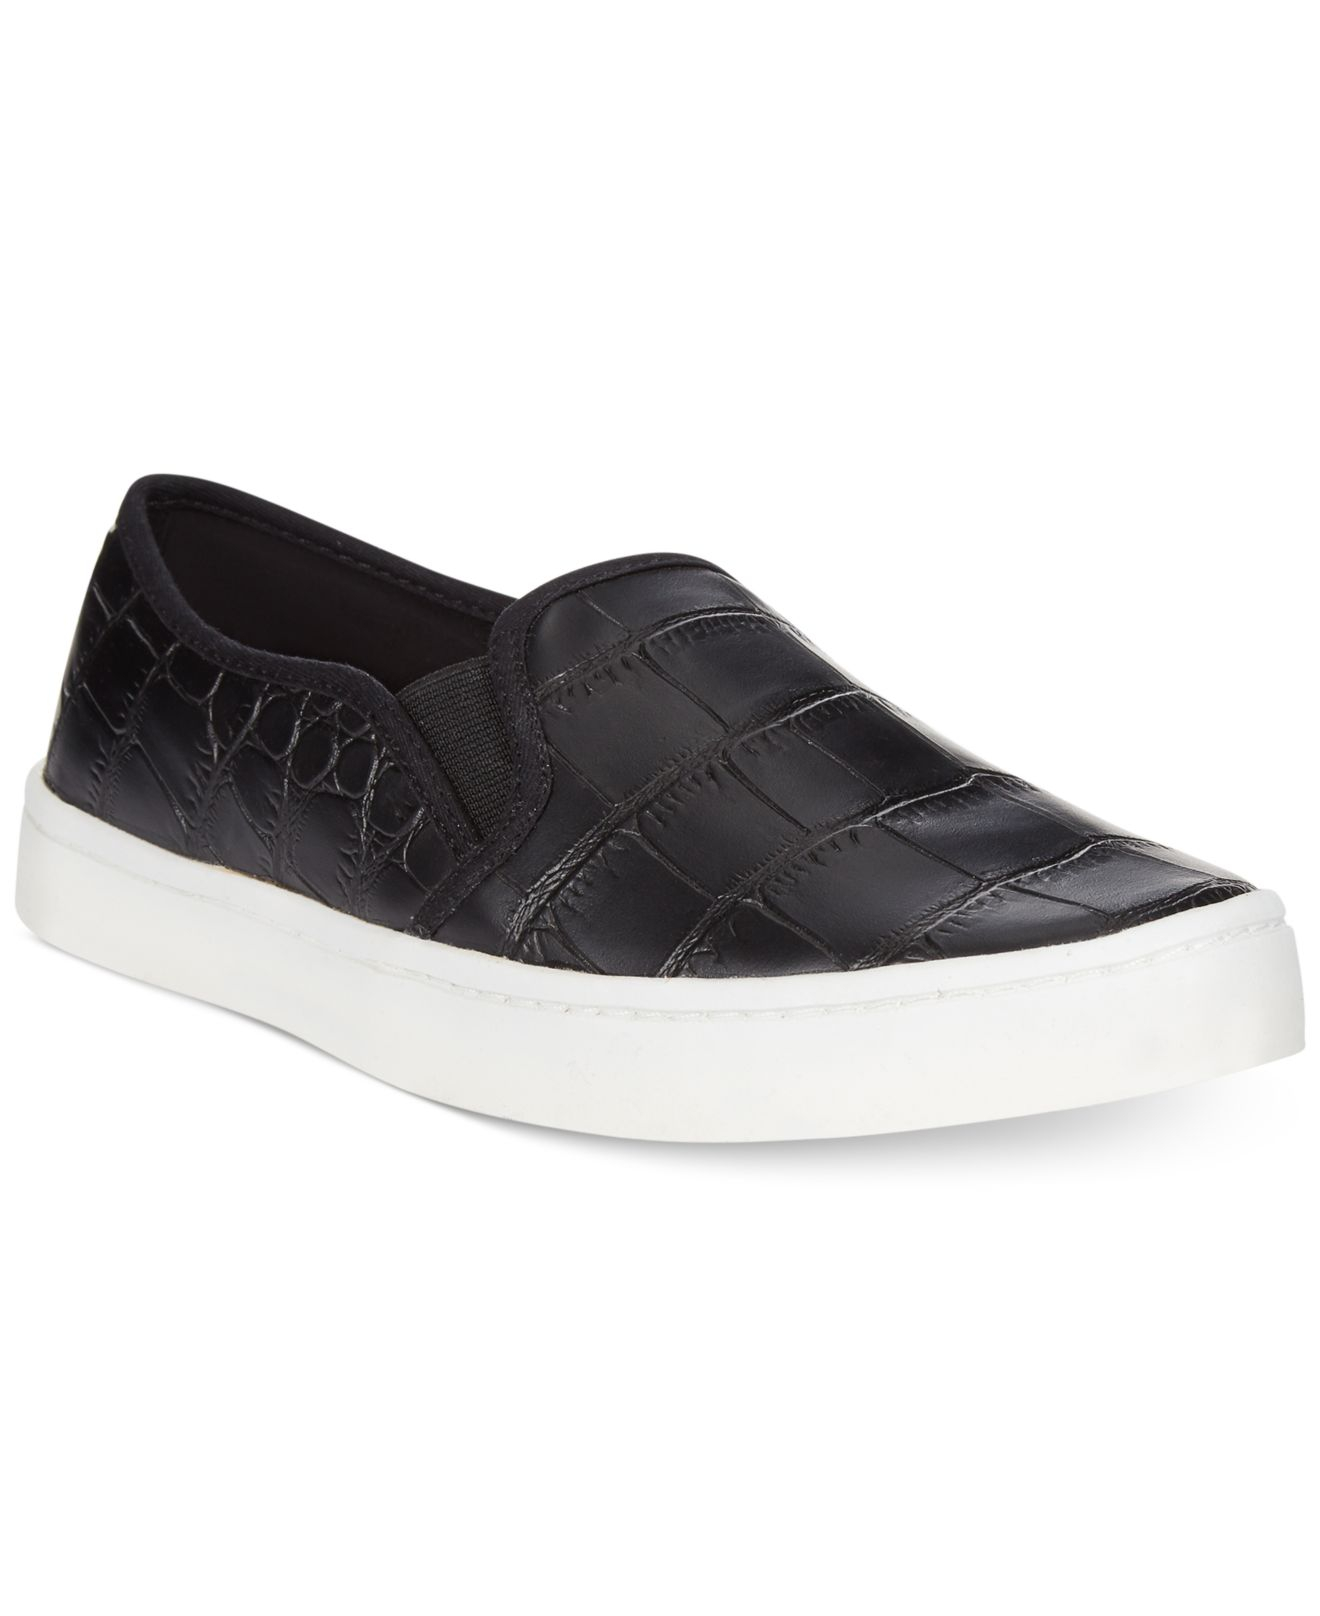 6163e0ac6d6dd4 Lyst - Report Argo Slip On Sneakers in Black